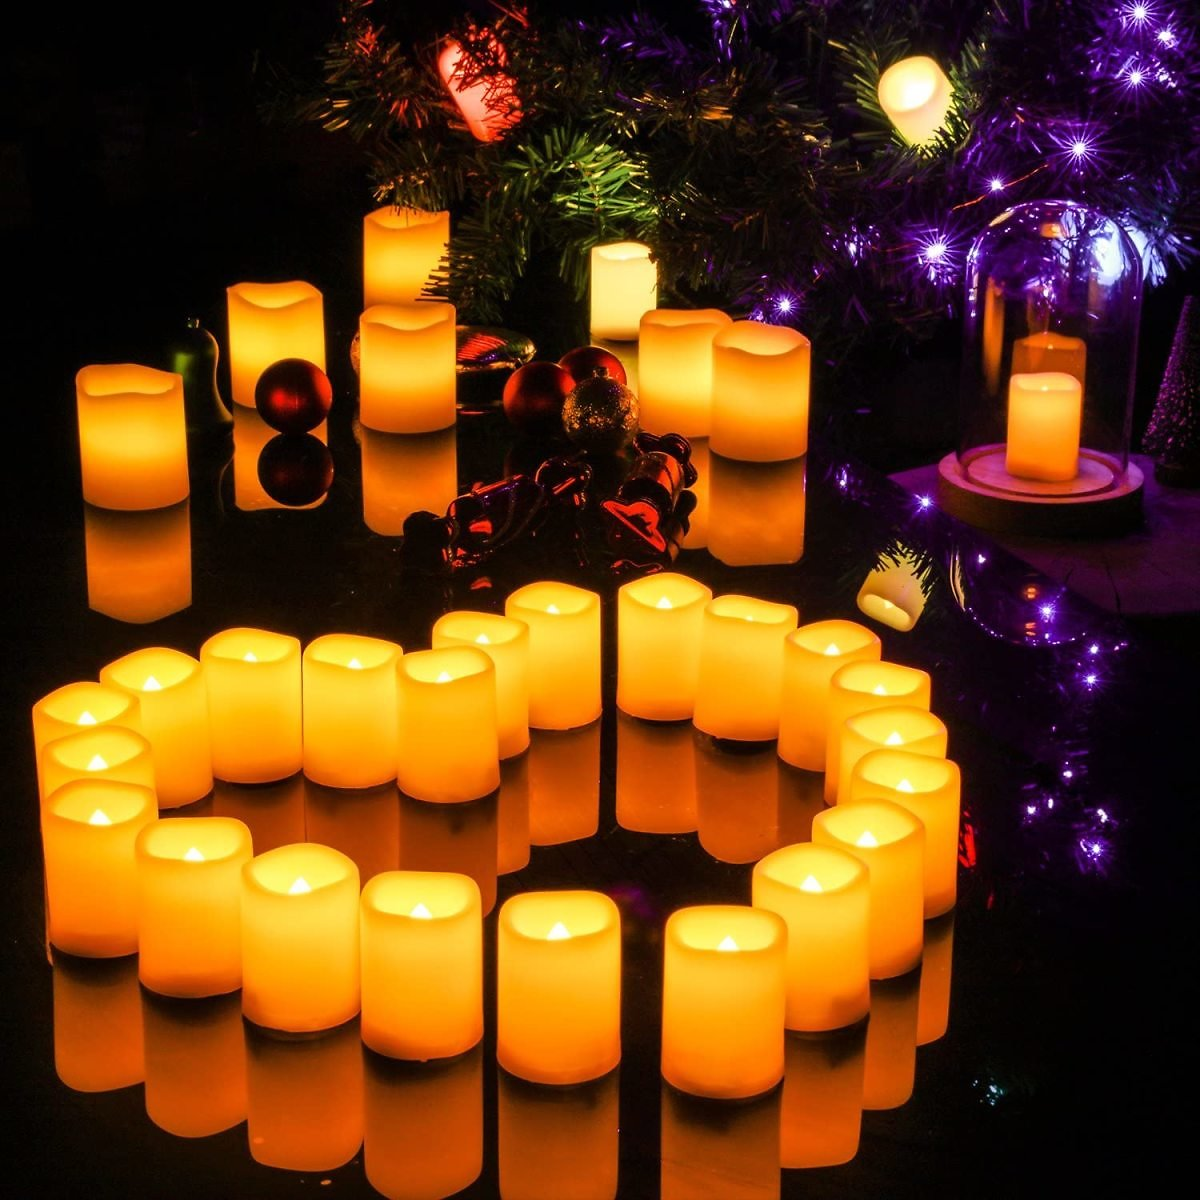 Kohree Flameless Candles LED Battery Candles with Timer Remote Control Easter LED Pillar Votive Unscented Ivory Remote Candles A